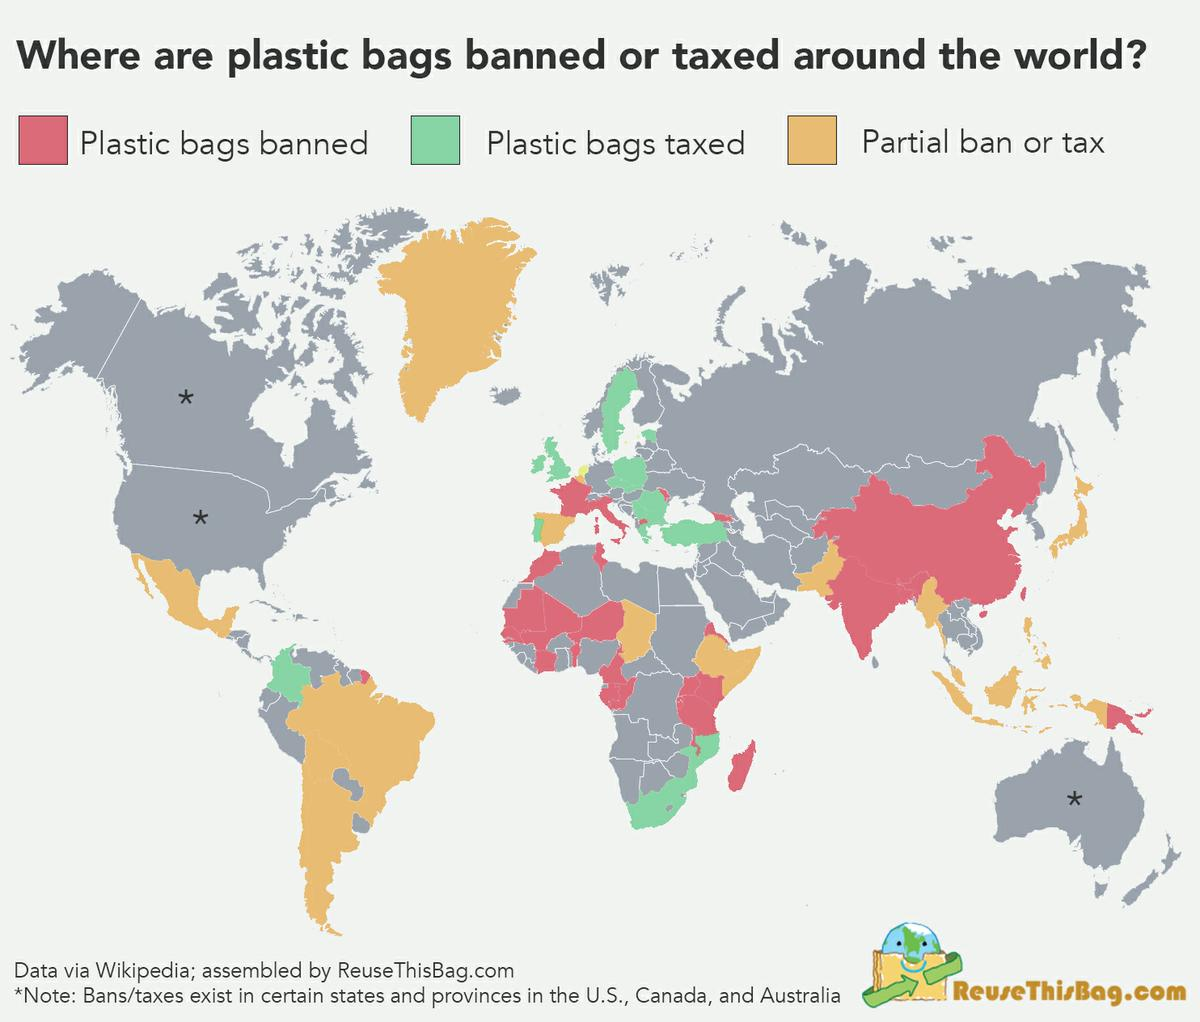 Where are Plastic Bags Banned Around the World?